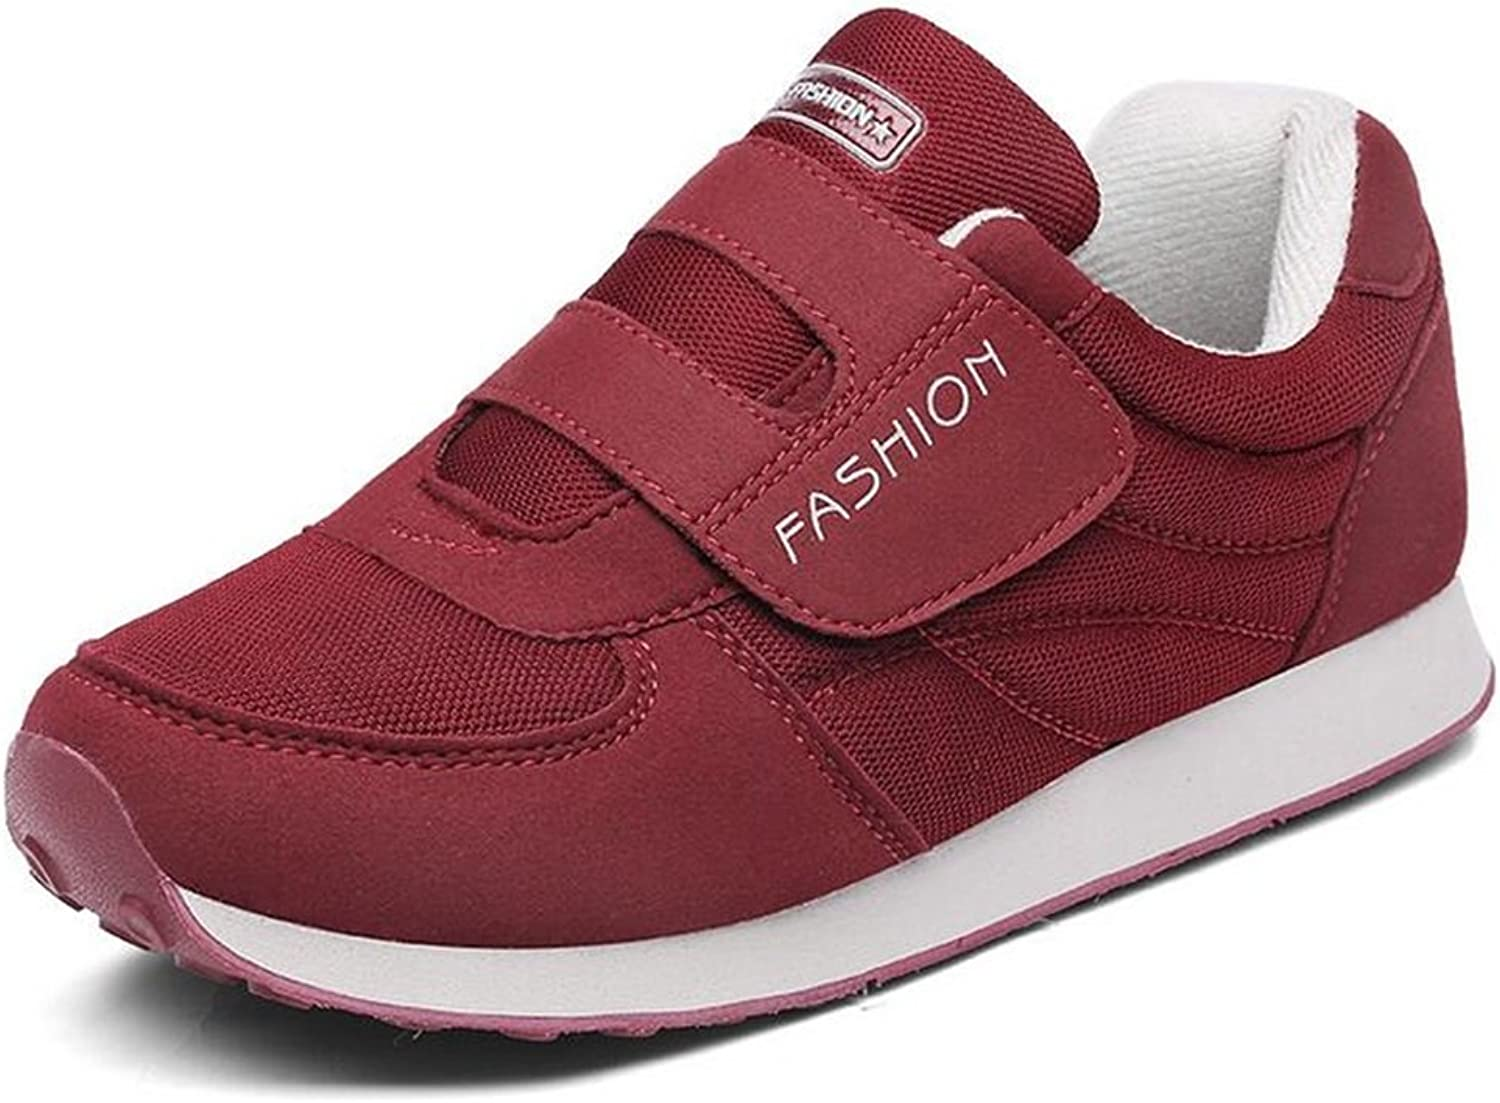 Exing Women's shoes Fall Winter Old shoes Anti-Slip Light Soles Gym Sports Trainers,Travel shoes,mom Casual Sneakers